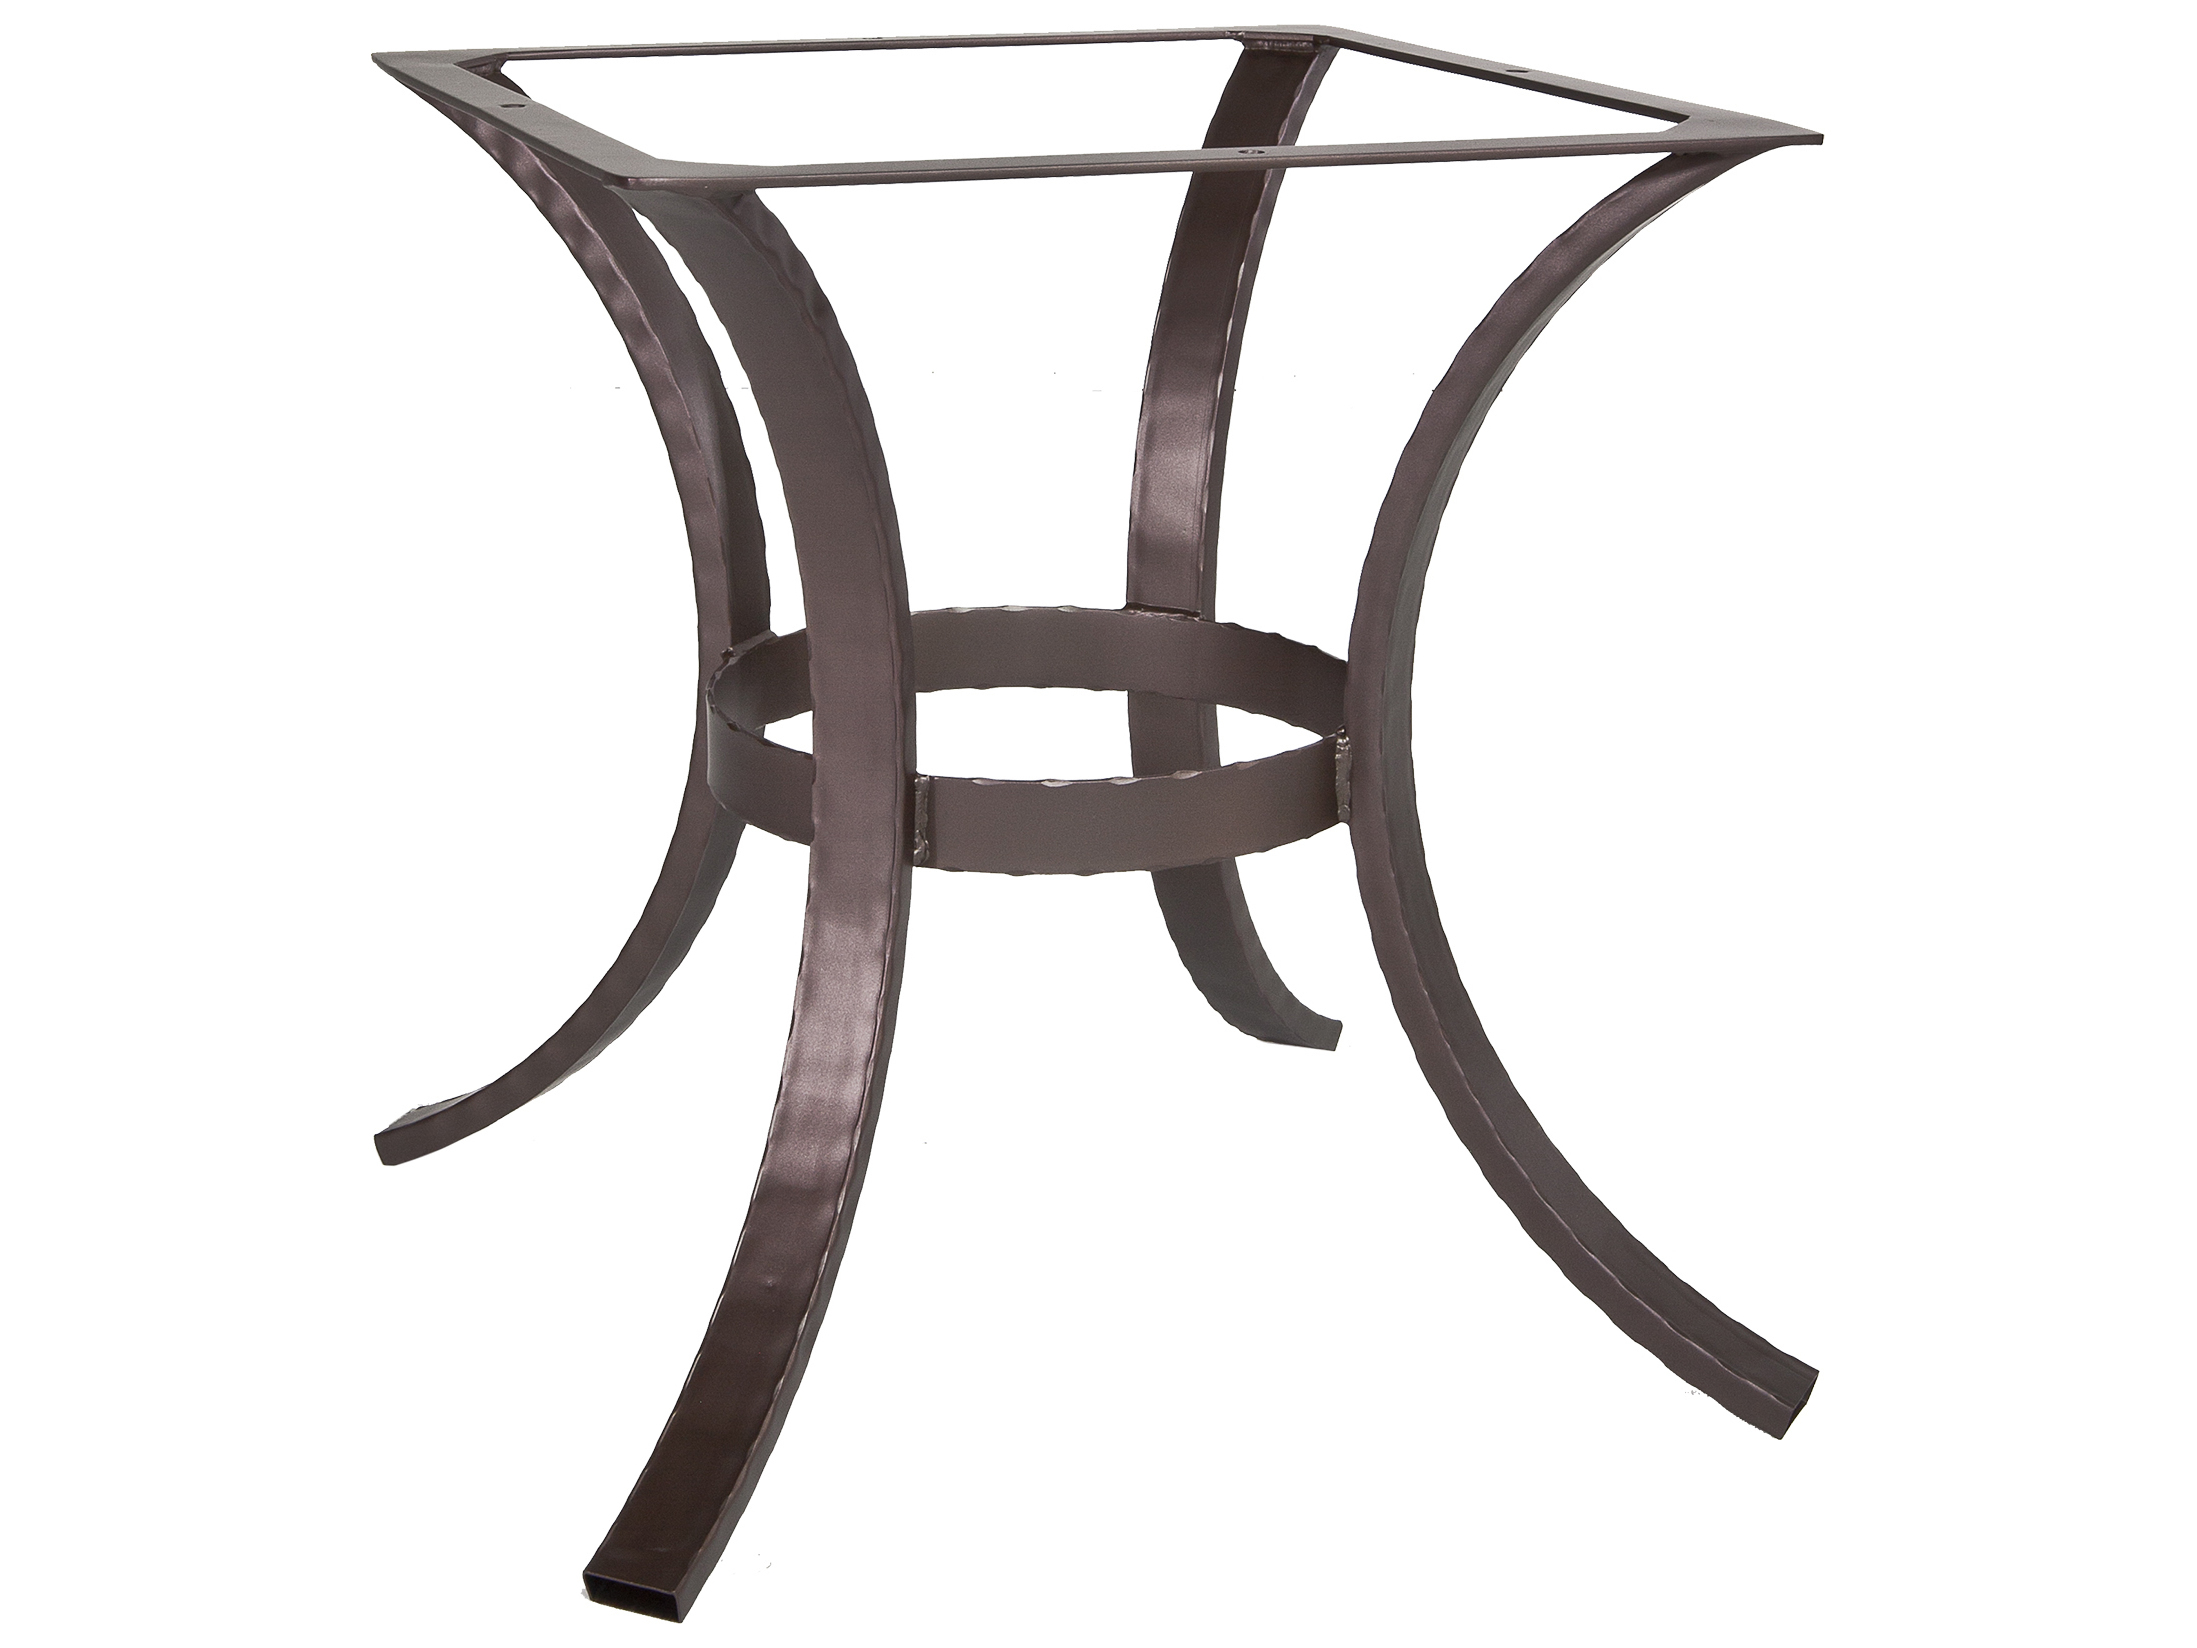 Picture of: Ow Lee Hammered Wrought Iron 03 Dining Table Base Hi Dt03